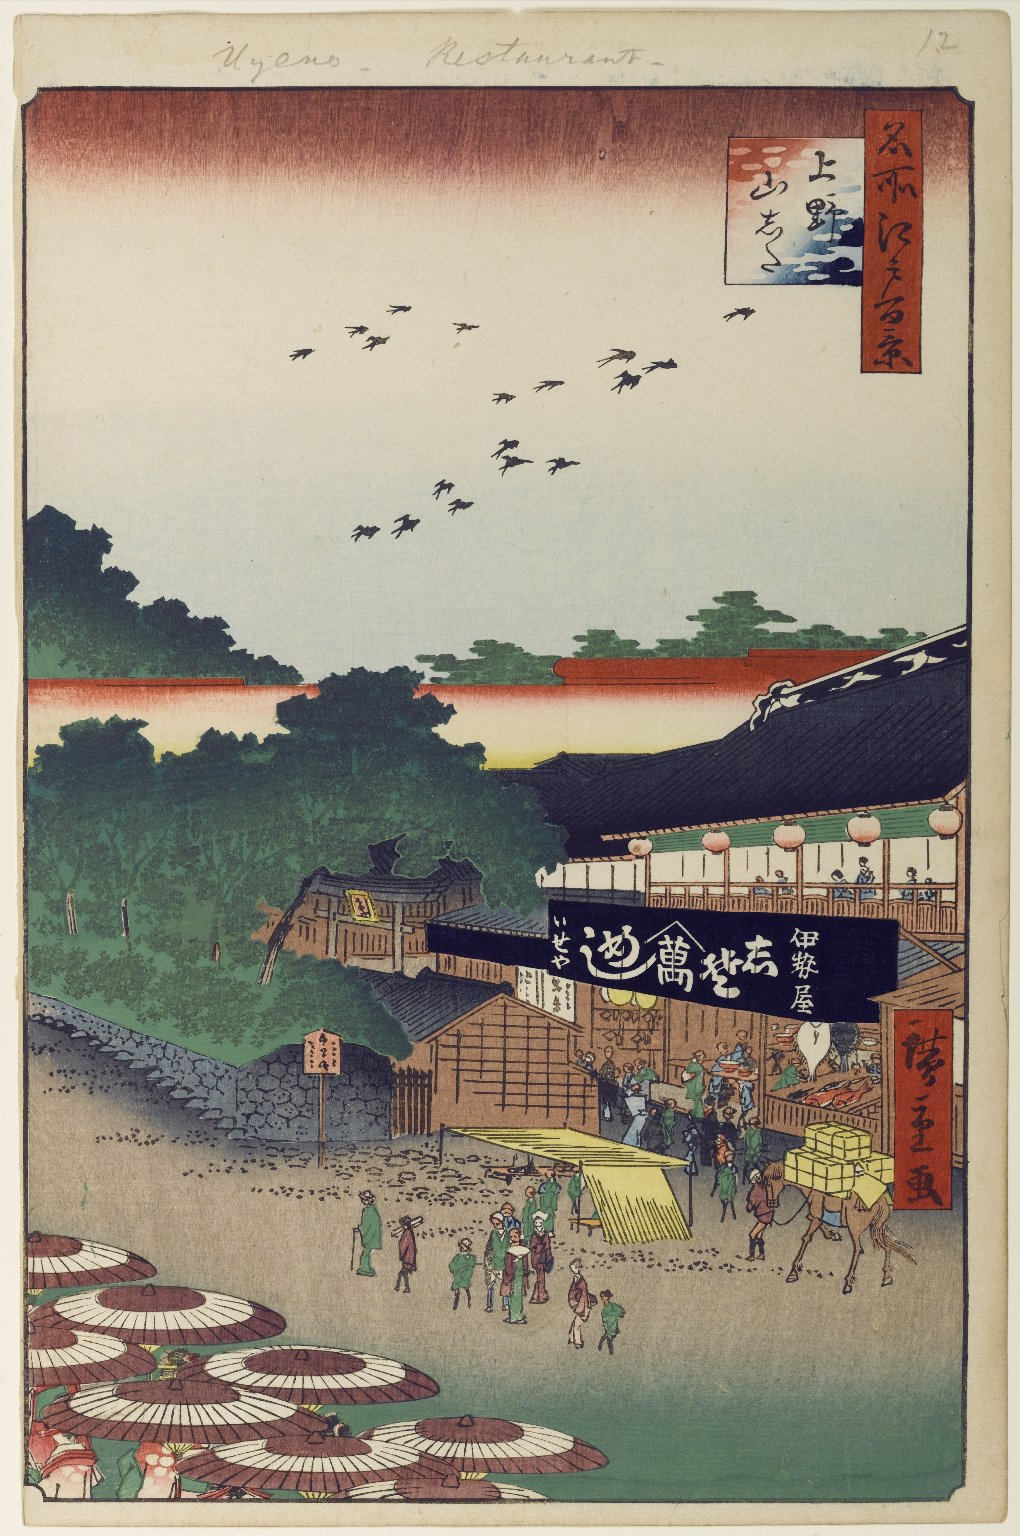 Brooklyn Museum: Ueno Yamashita, No. 12 in One Hundred Famous Views of Edo